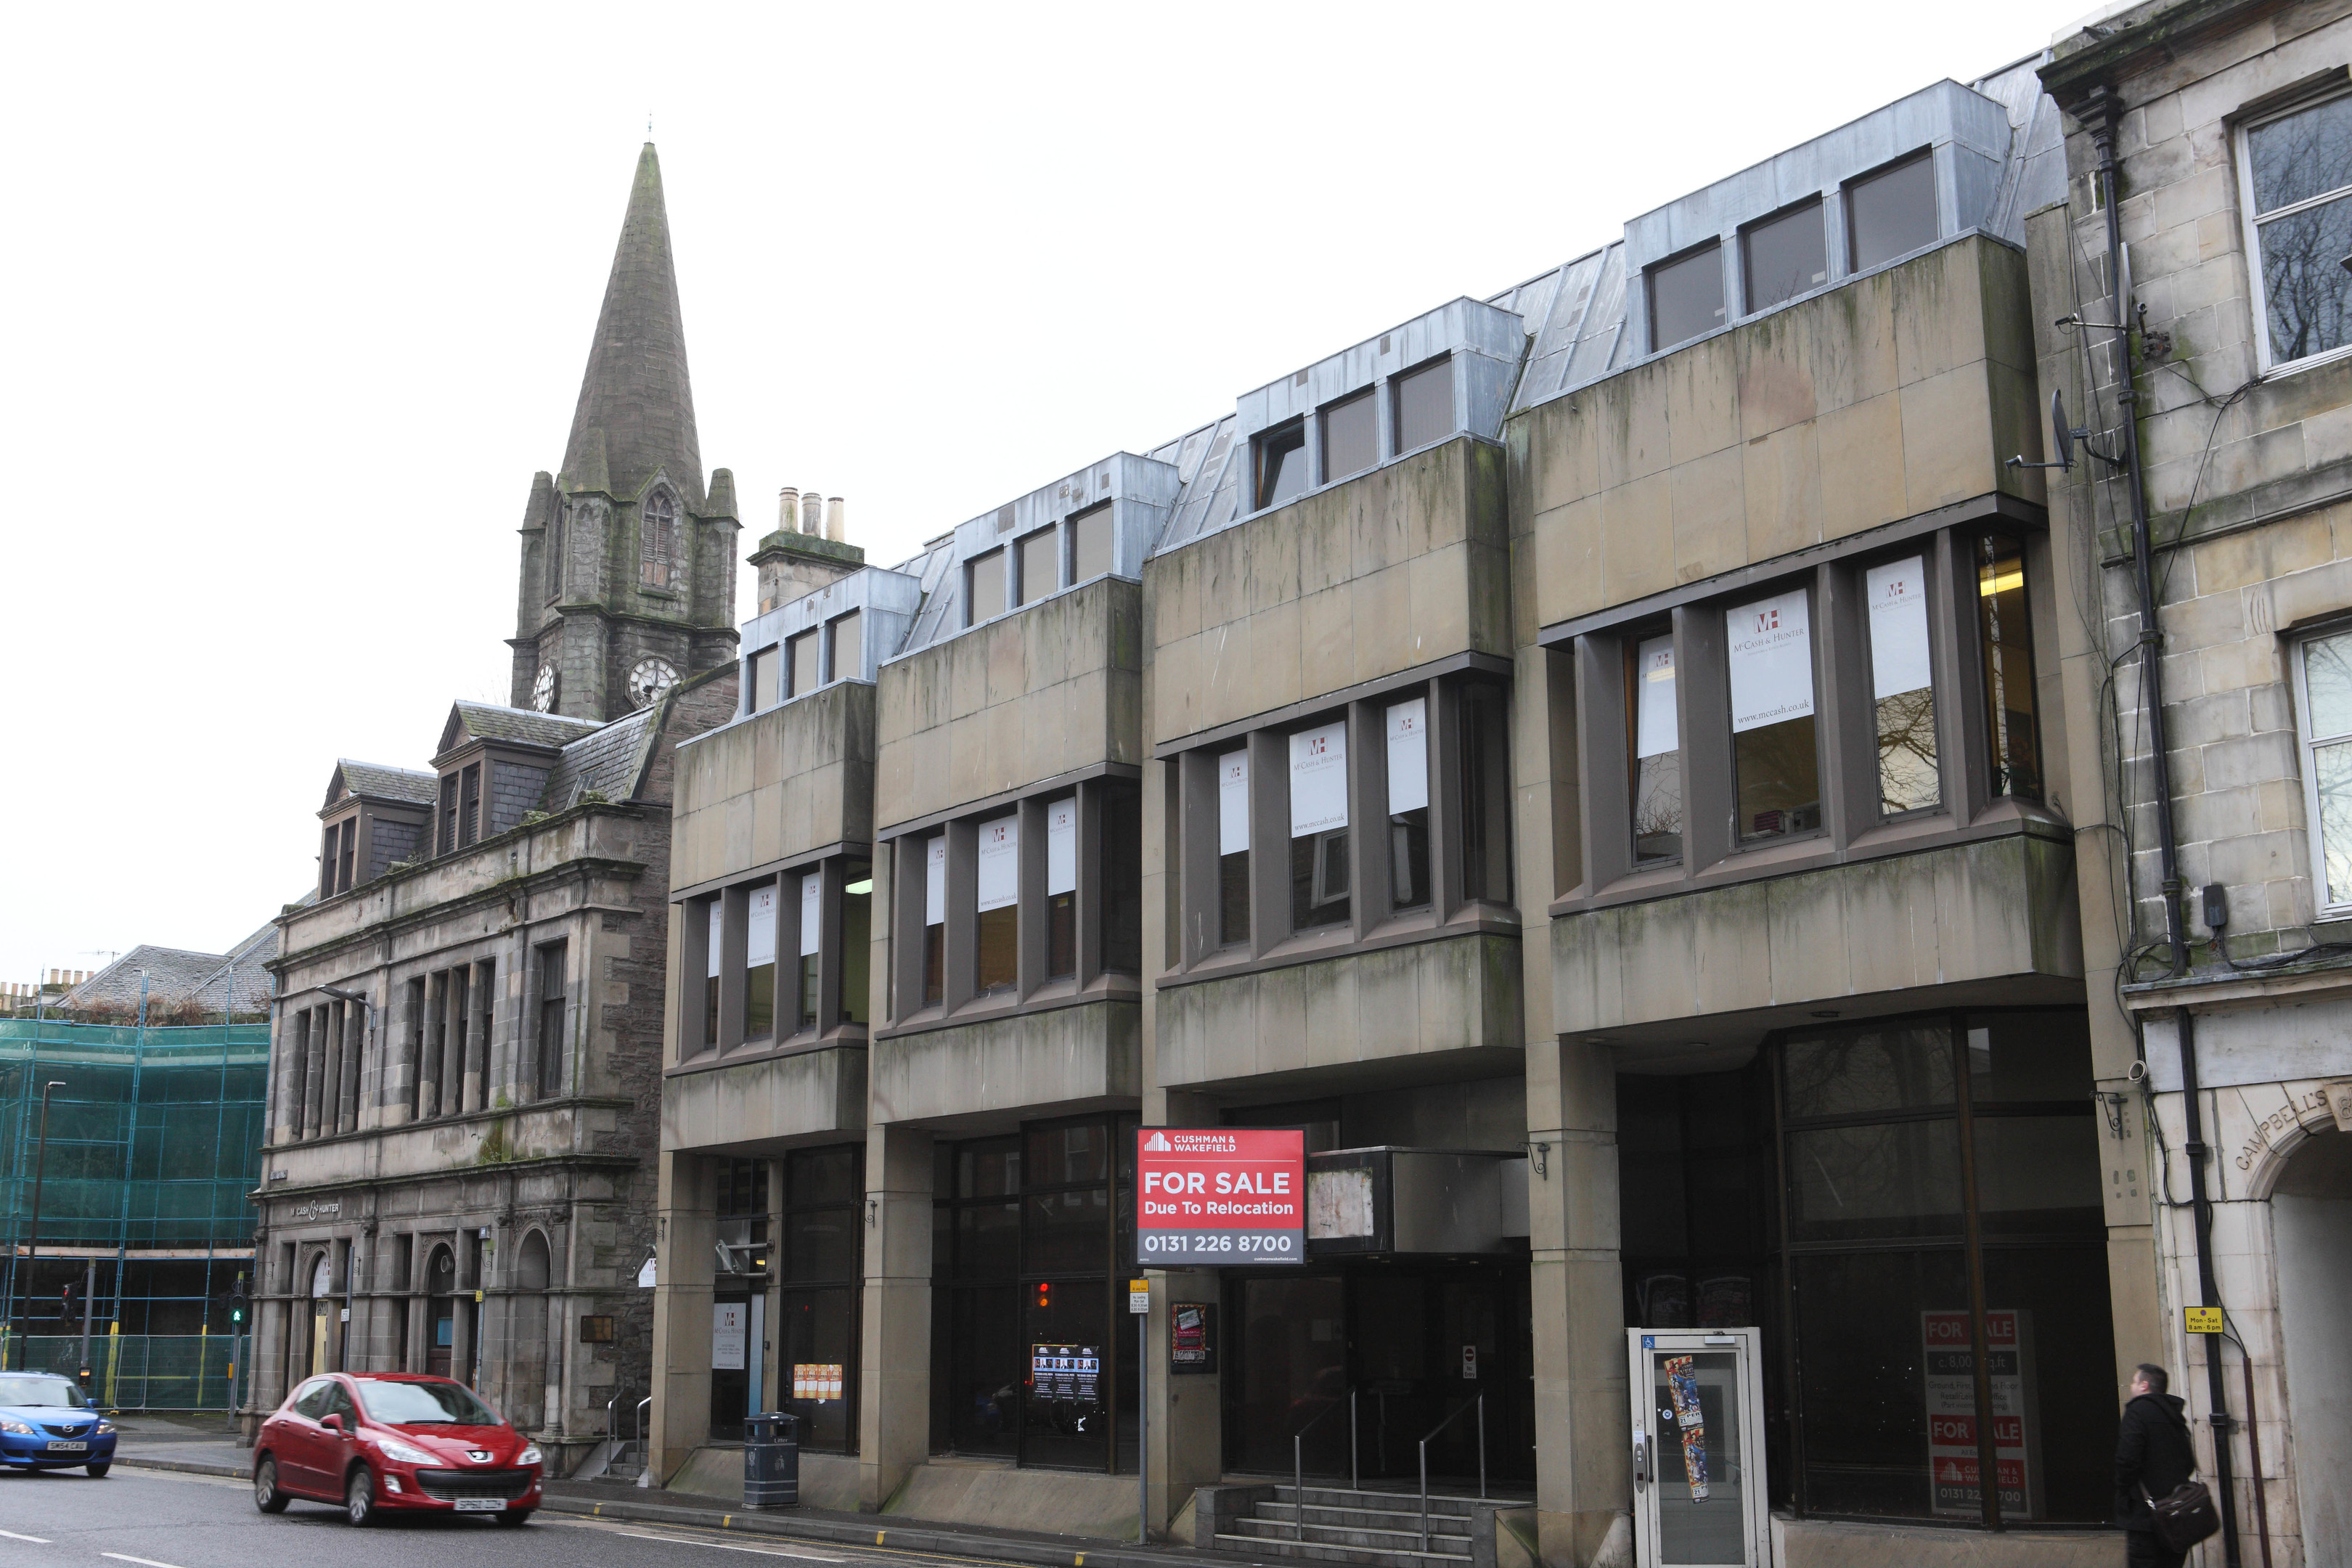 St Paul's Church with the now empty bank premises on South Methven Street, Perth.